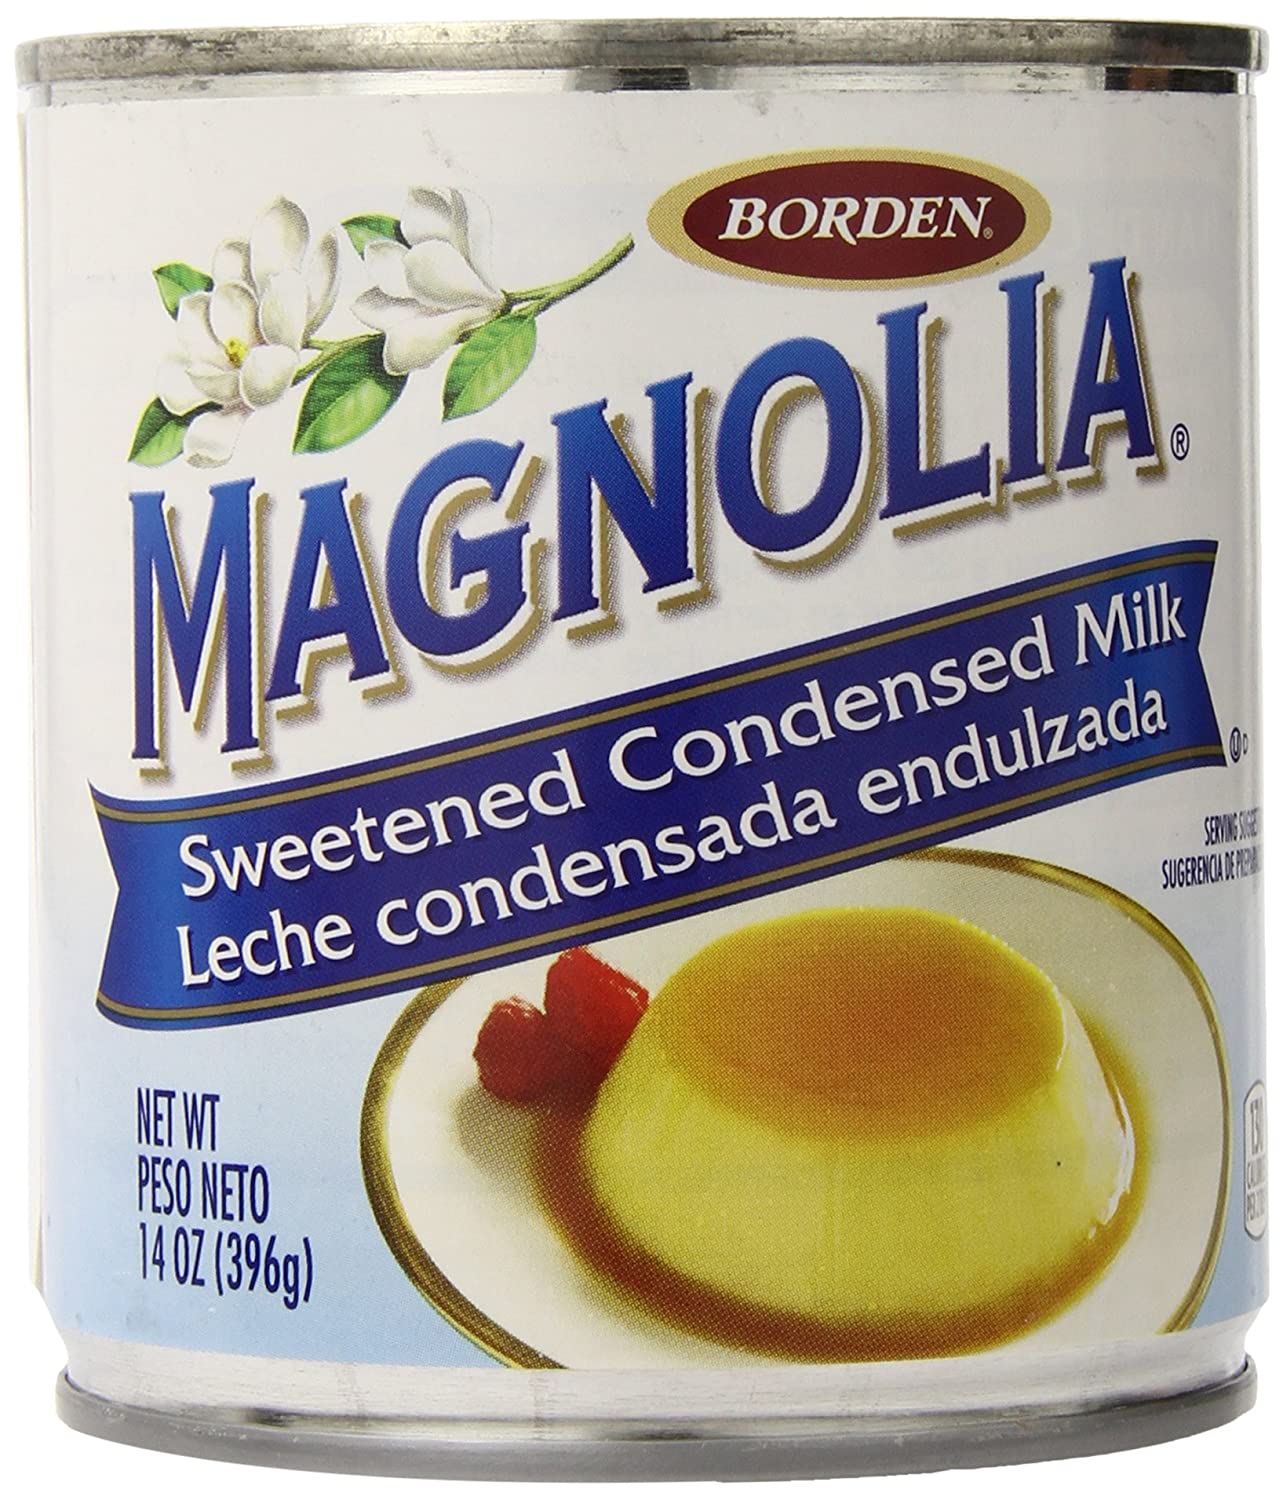 Amazon.com : Magnolia Sweetened Condensed Milk, 14 Ounce (Pack of 24) : Grocery & Gourmet Food